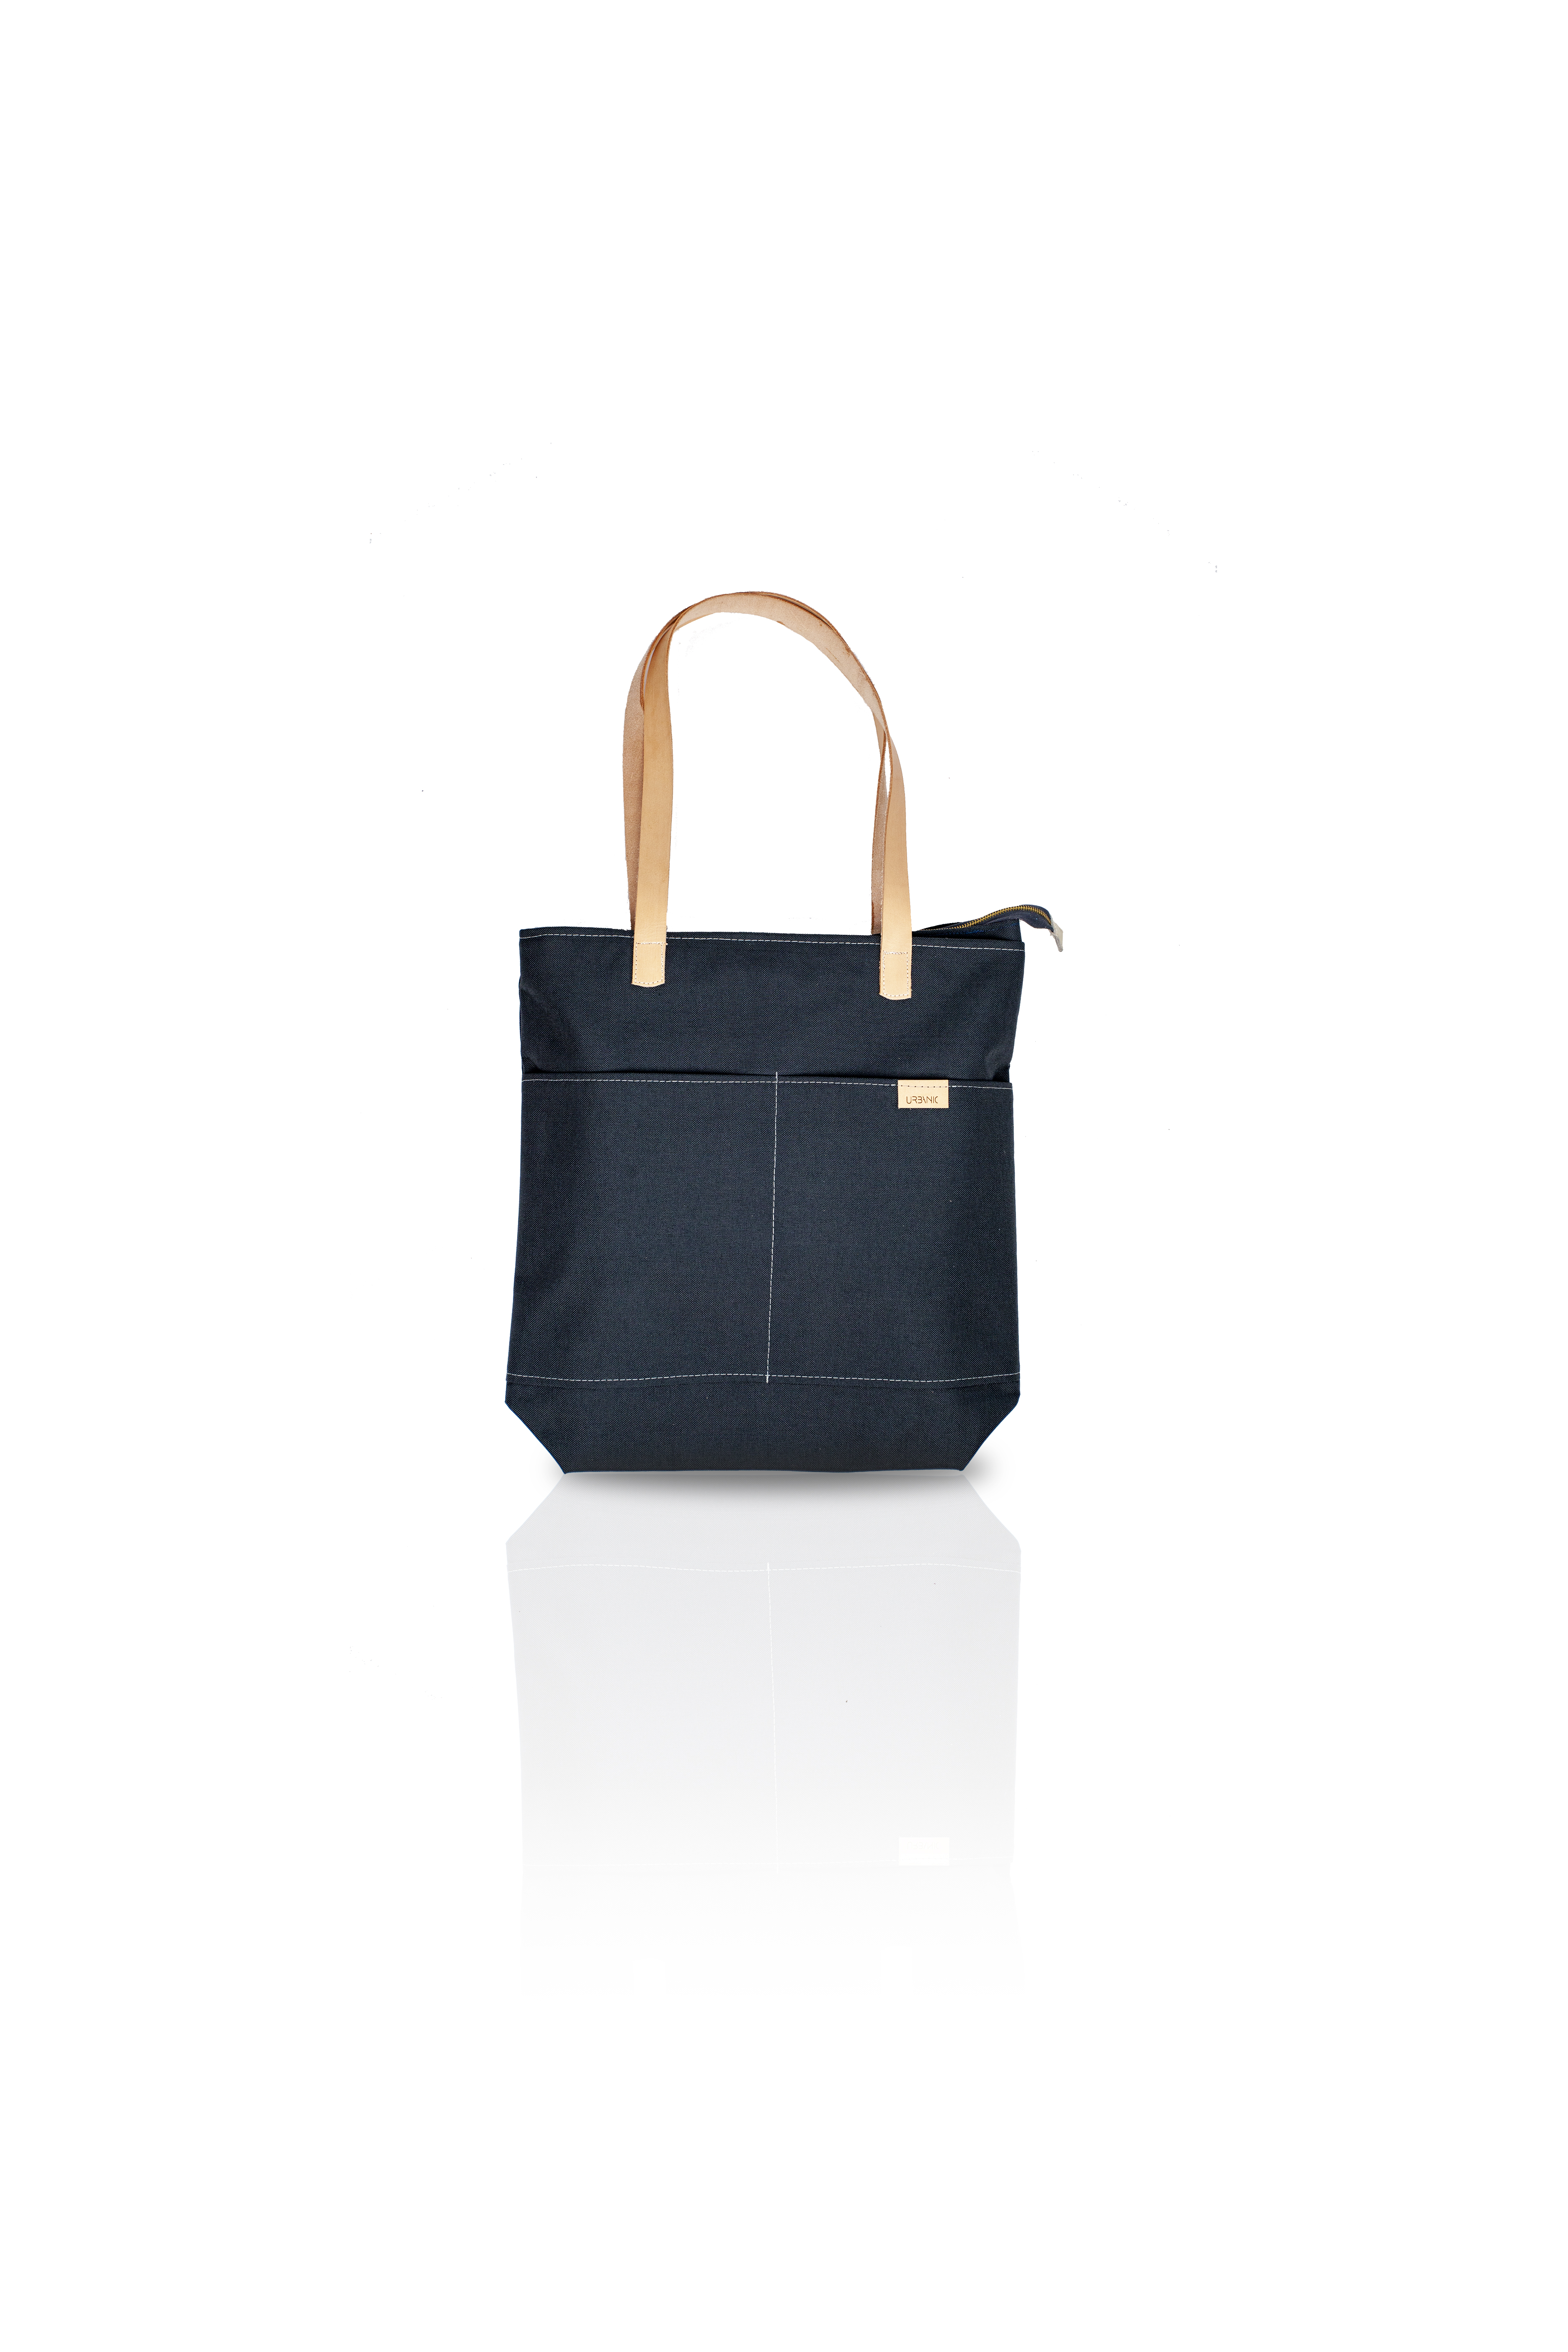 Urbanic Bag - Topino